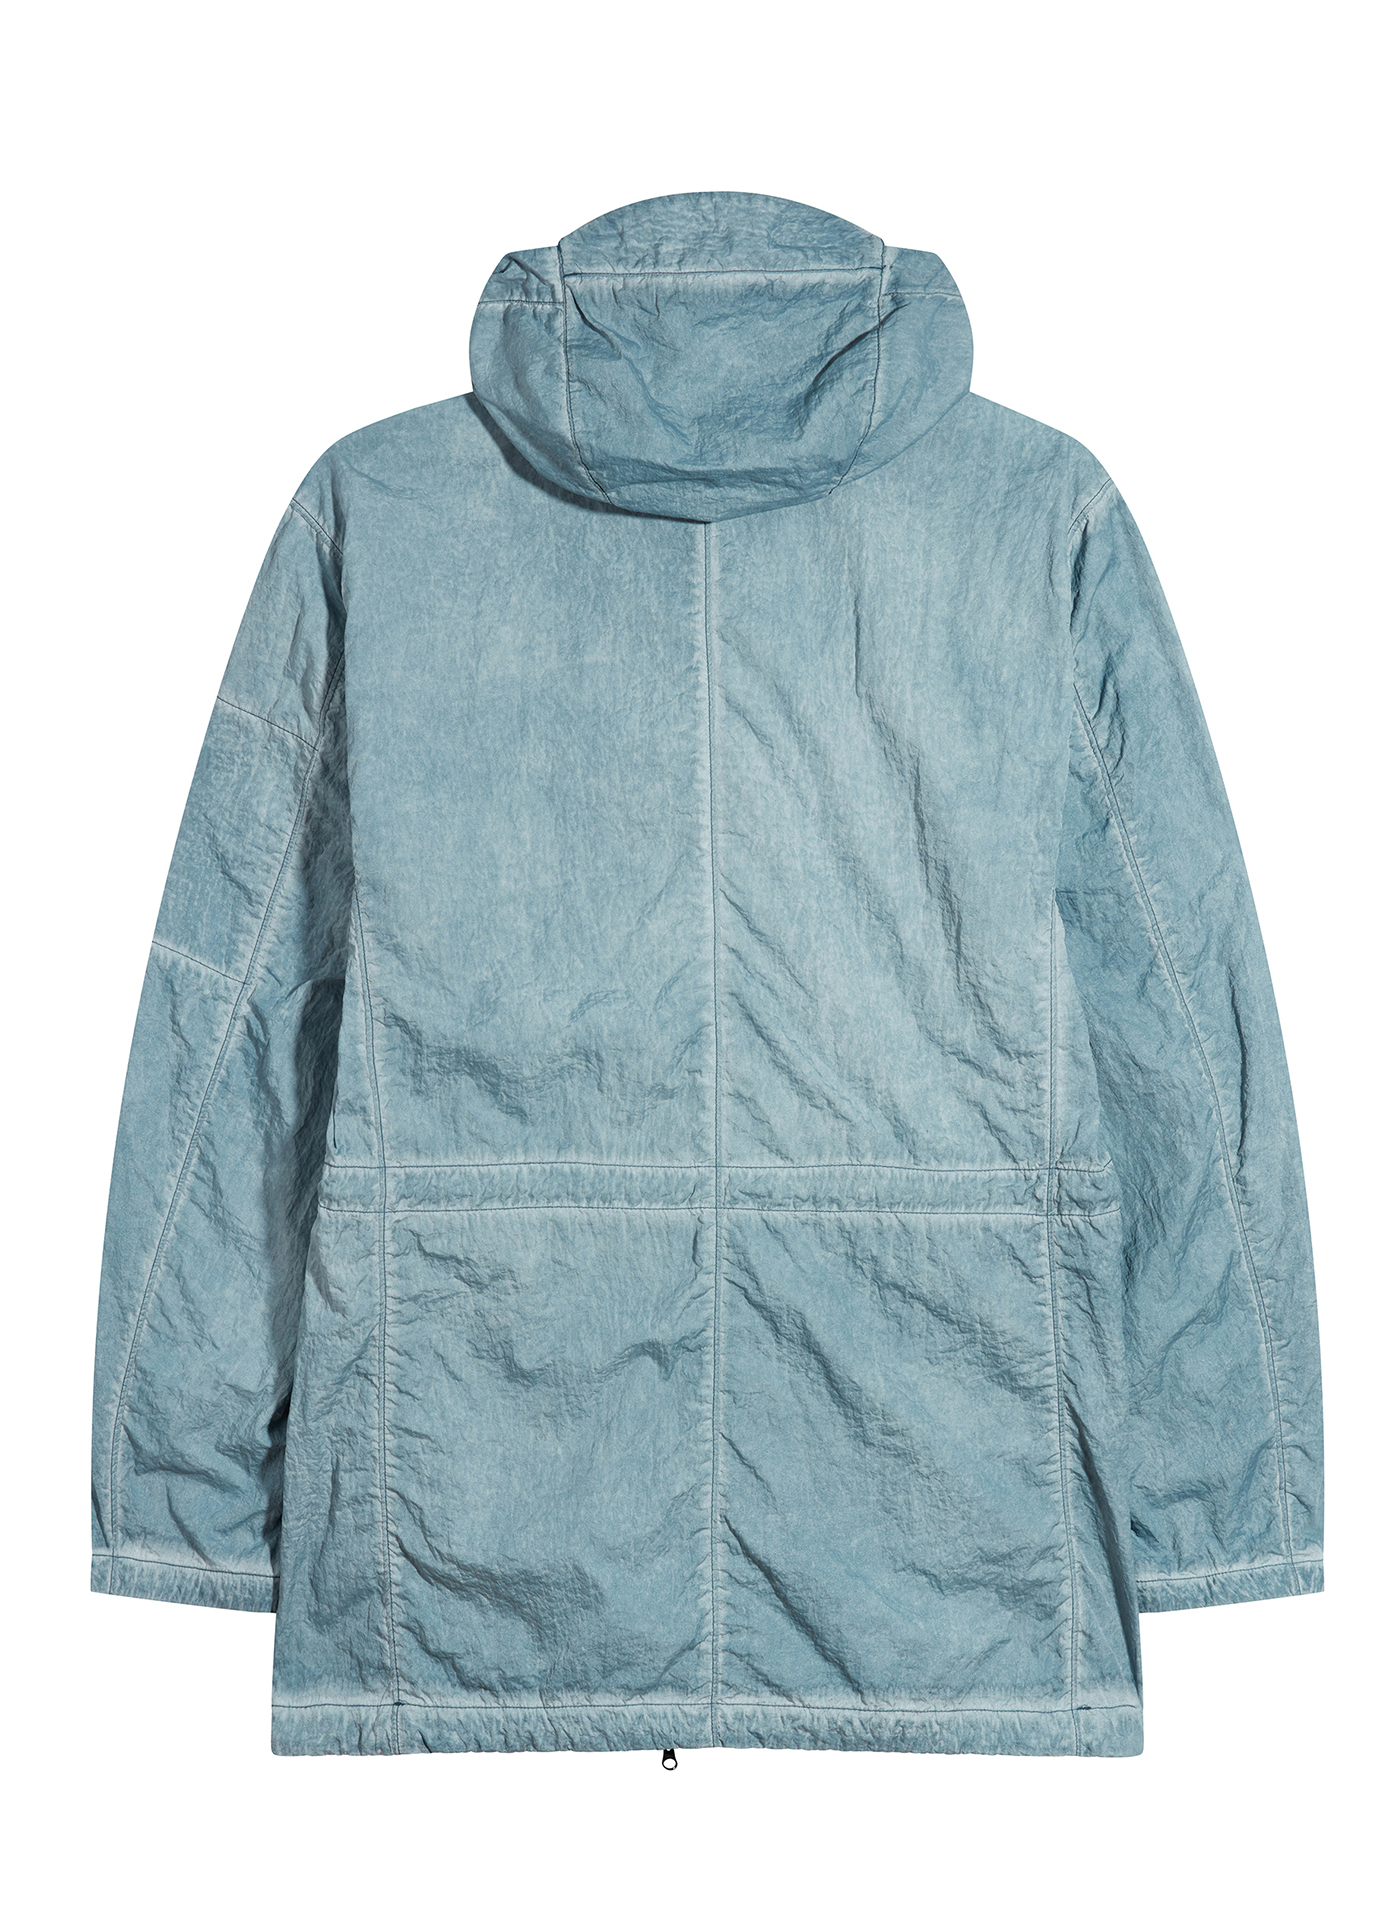 Back side shot of a washed out blue C.P. Company Jacket on white background